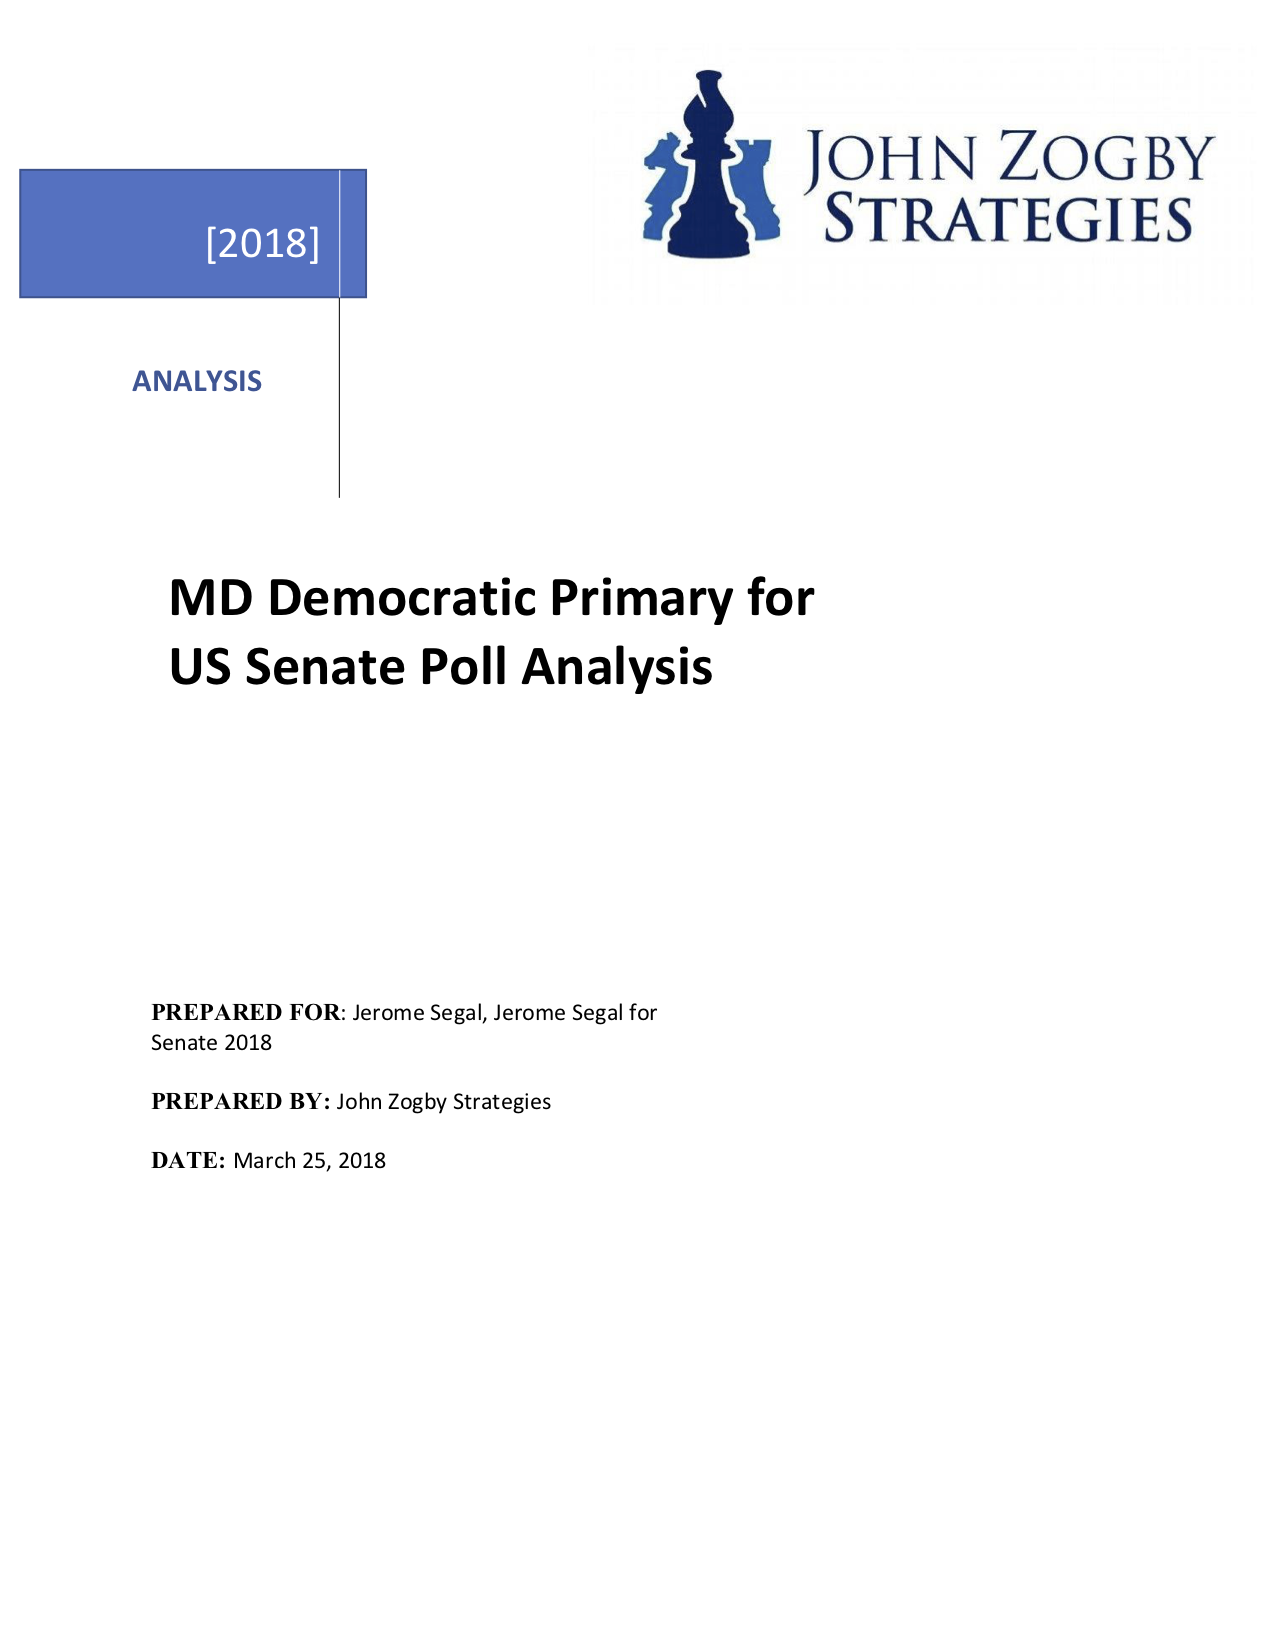 MD_Democratic_Primary_for_US_Senate_Poll.png